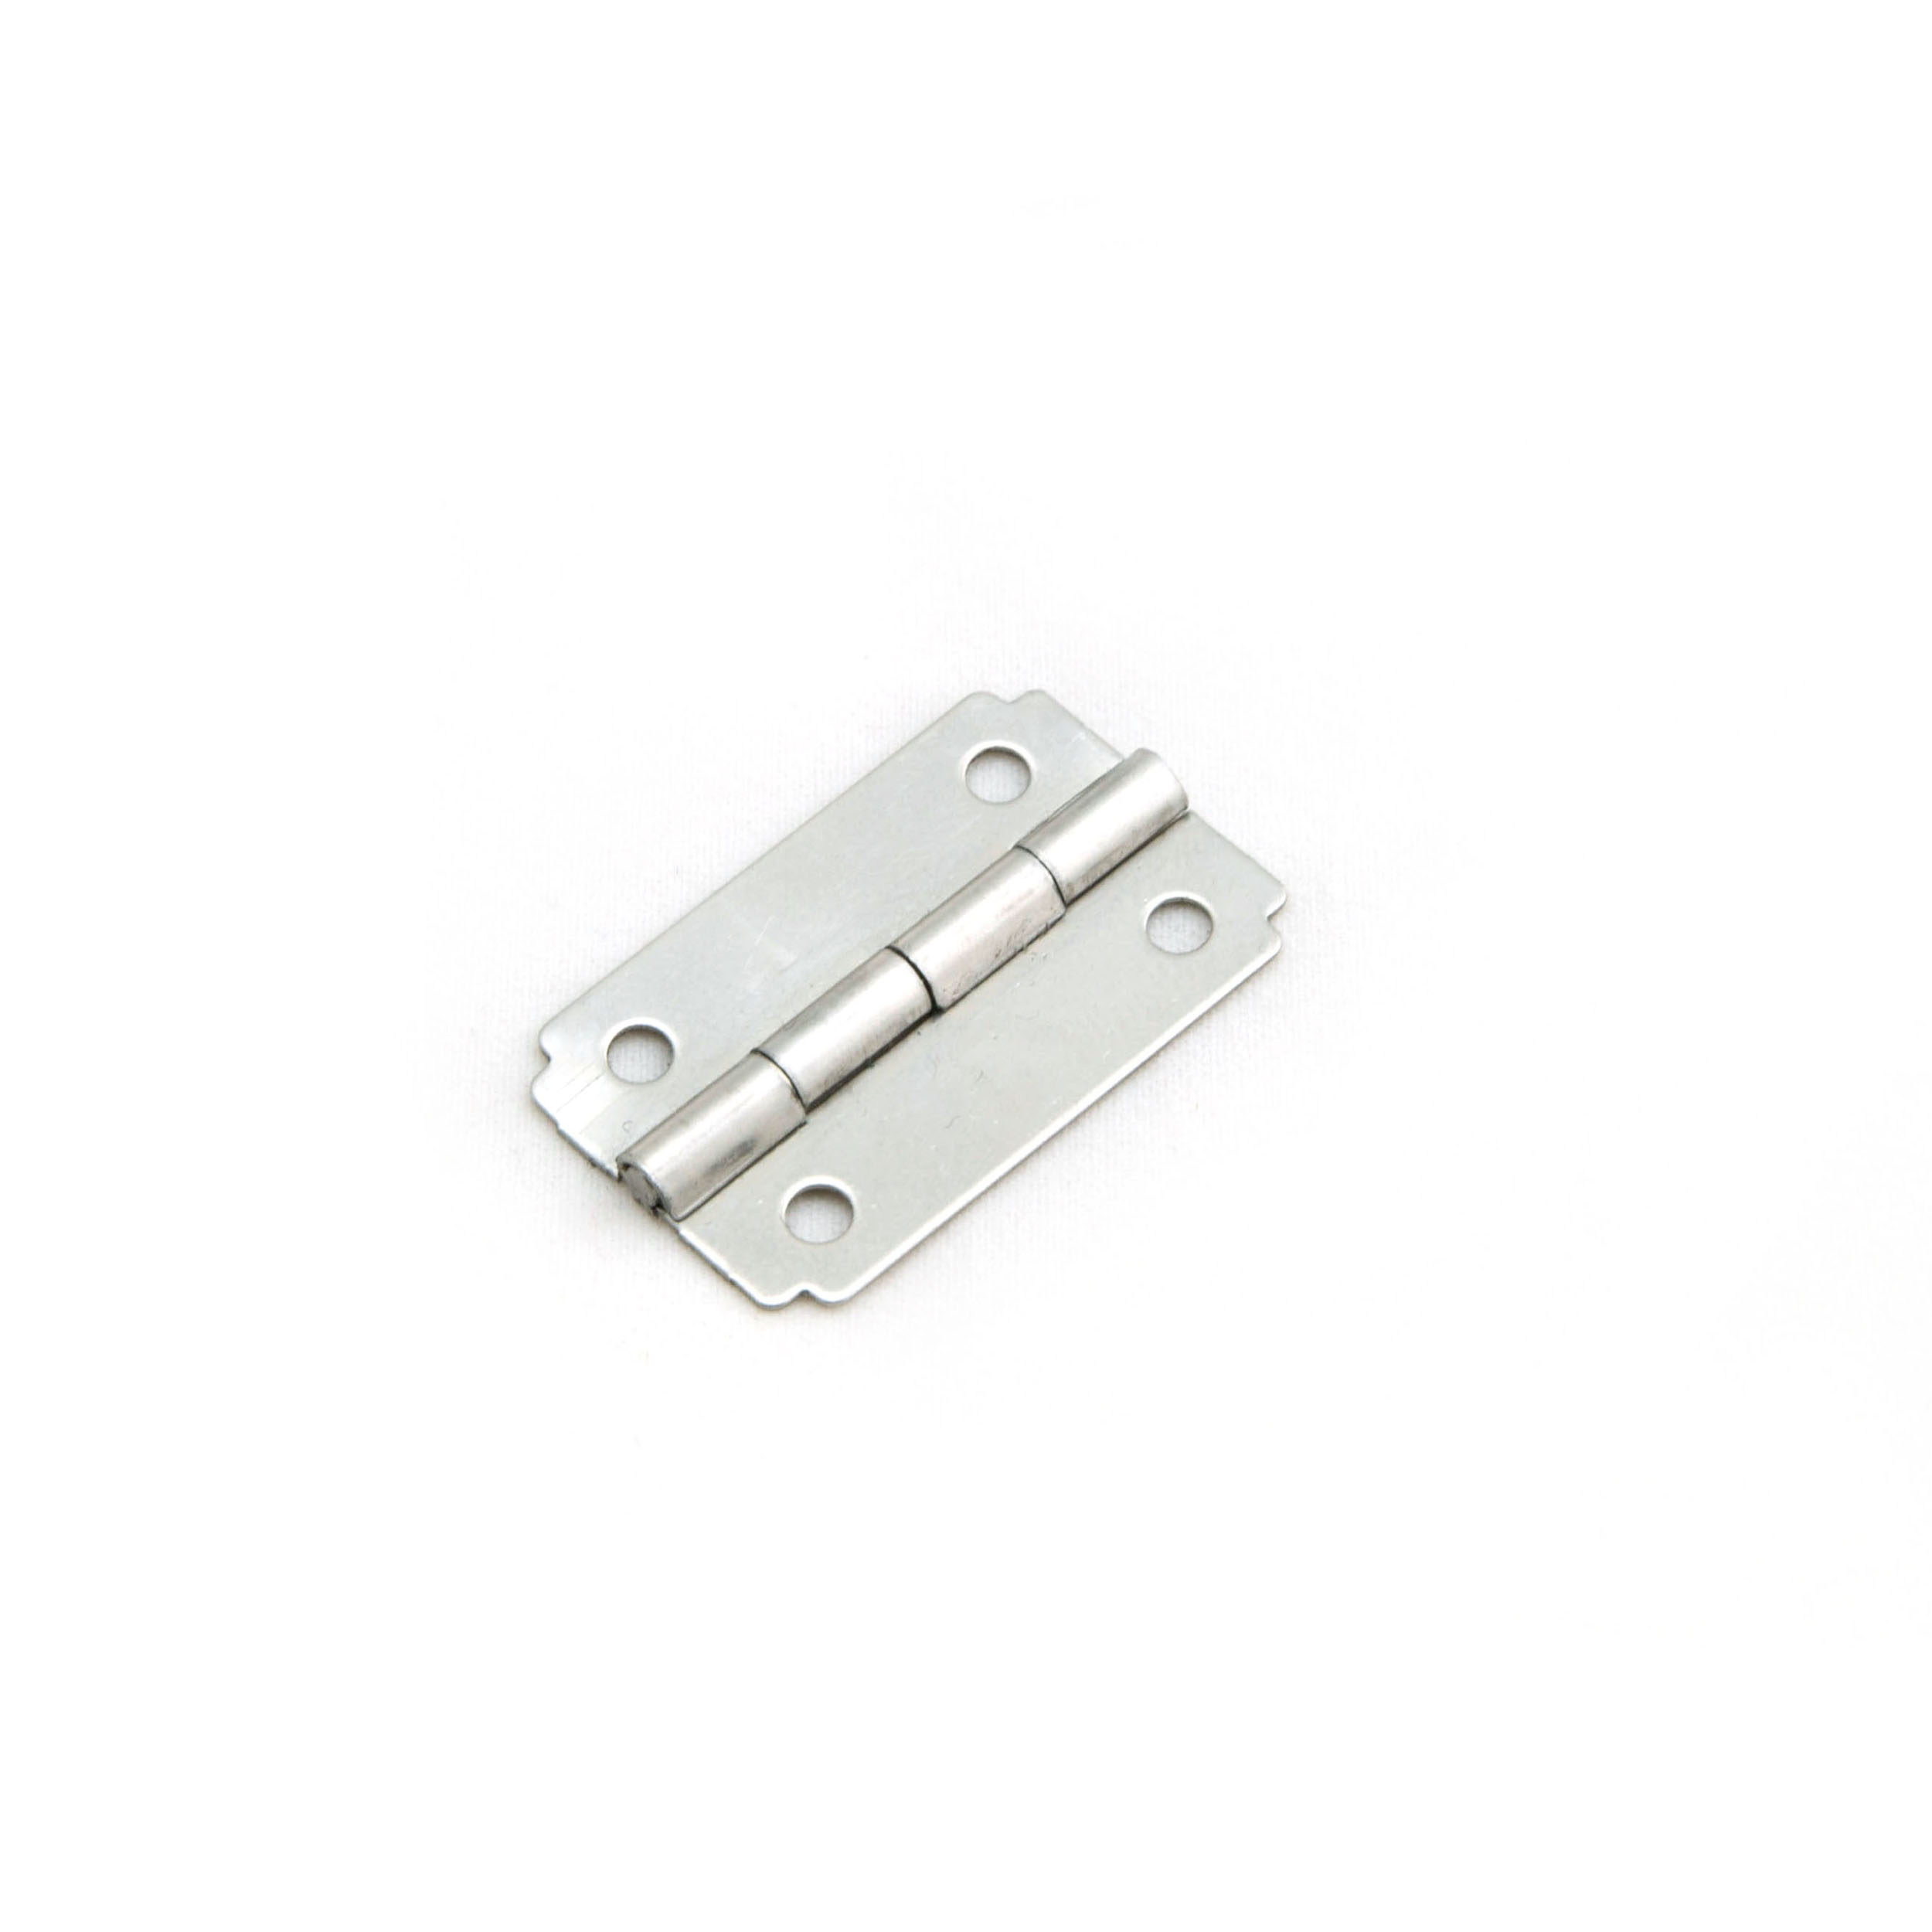 Stainless Steel Mini Hinge